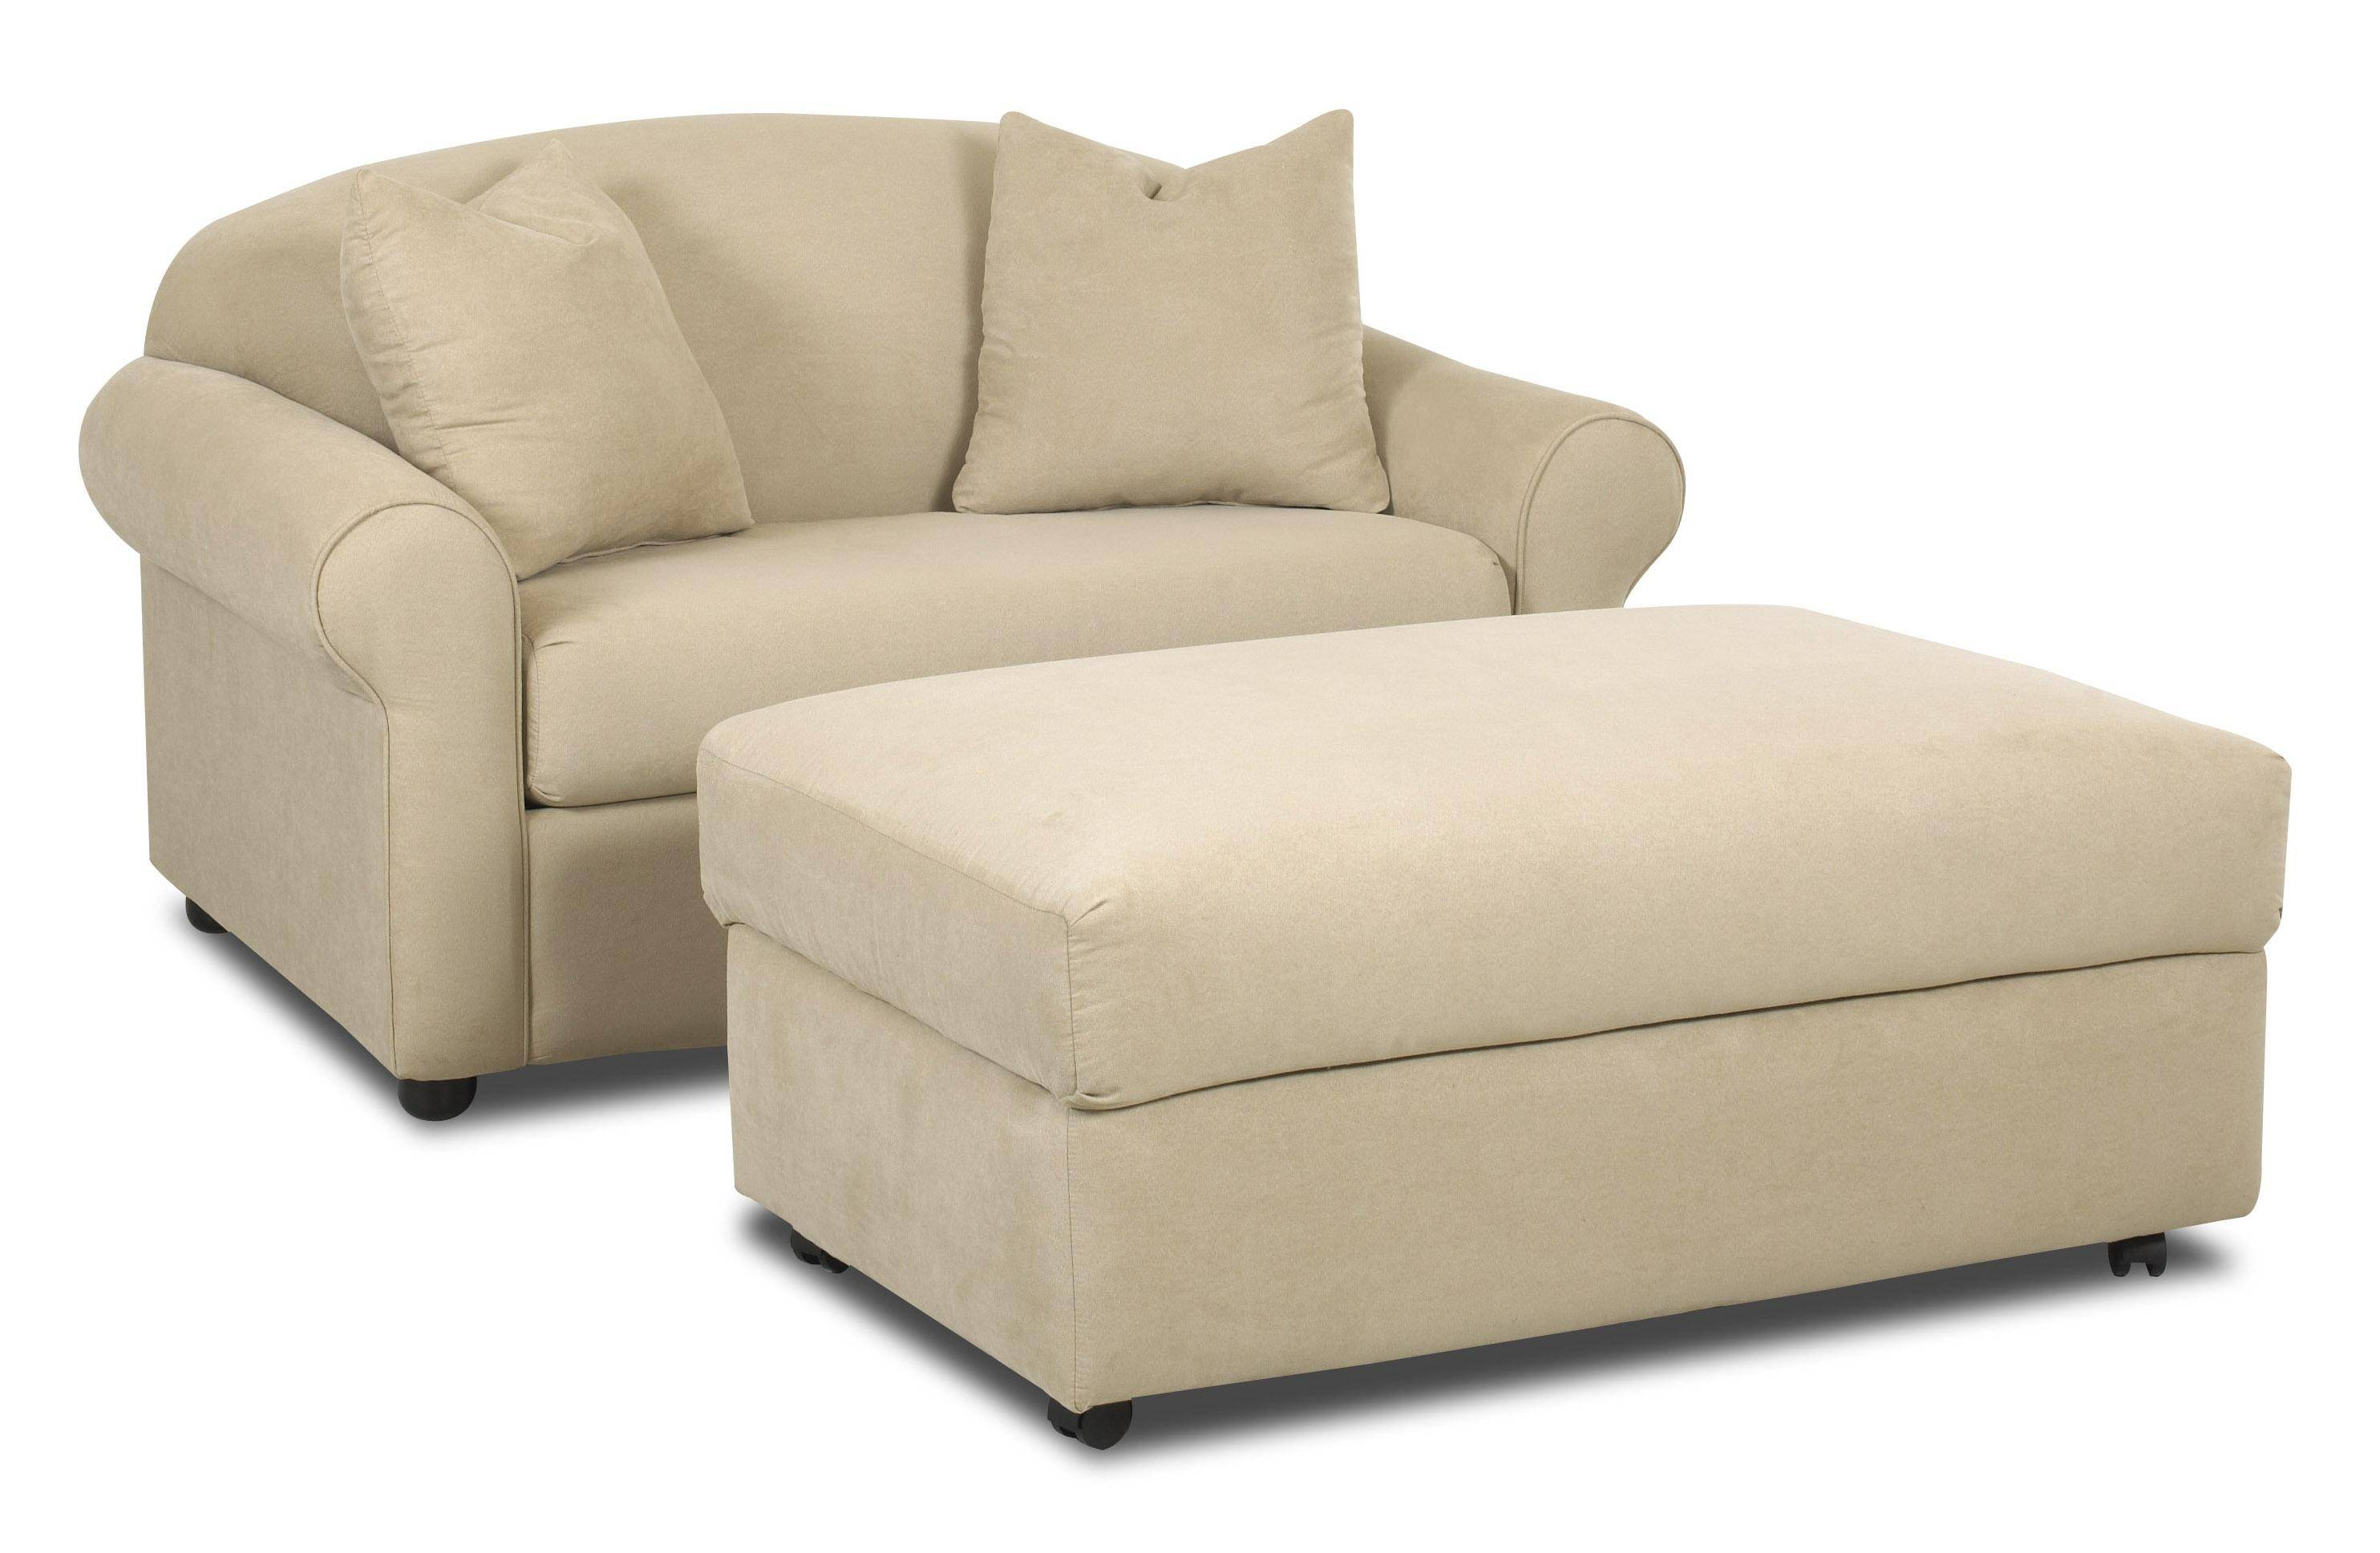 Sofa Chair And Ottoman | Sofa Gallery | Kengire Intended For Sofa Chair And Ottoman (View 7 of 15)